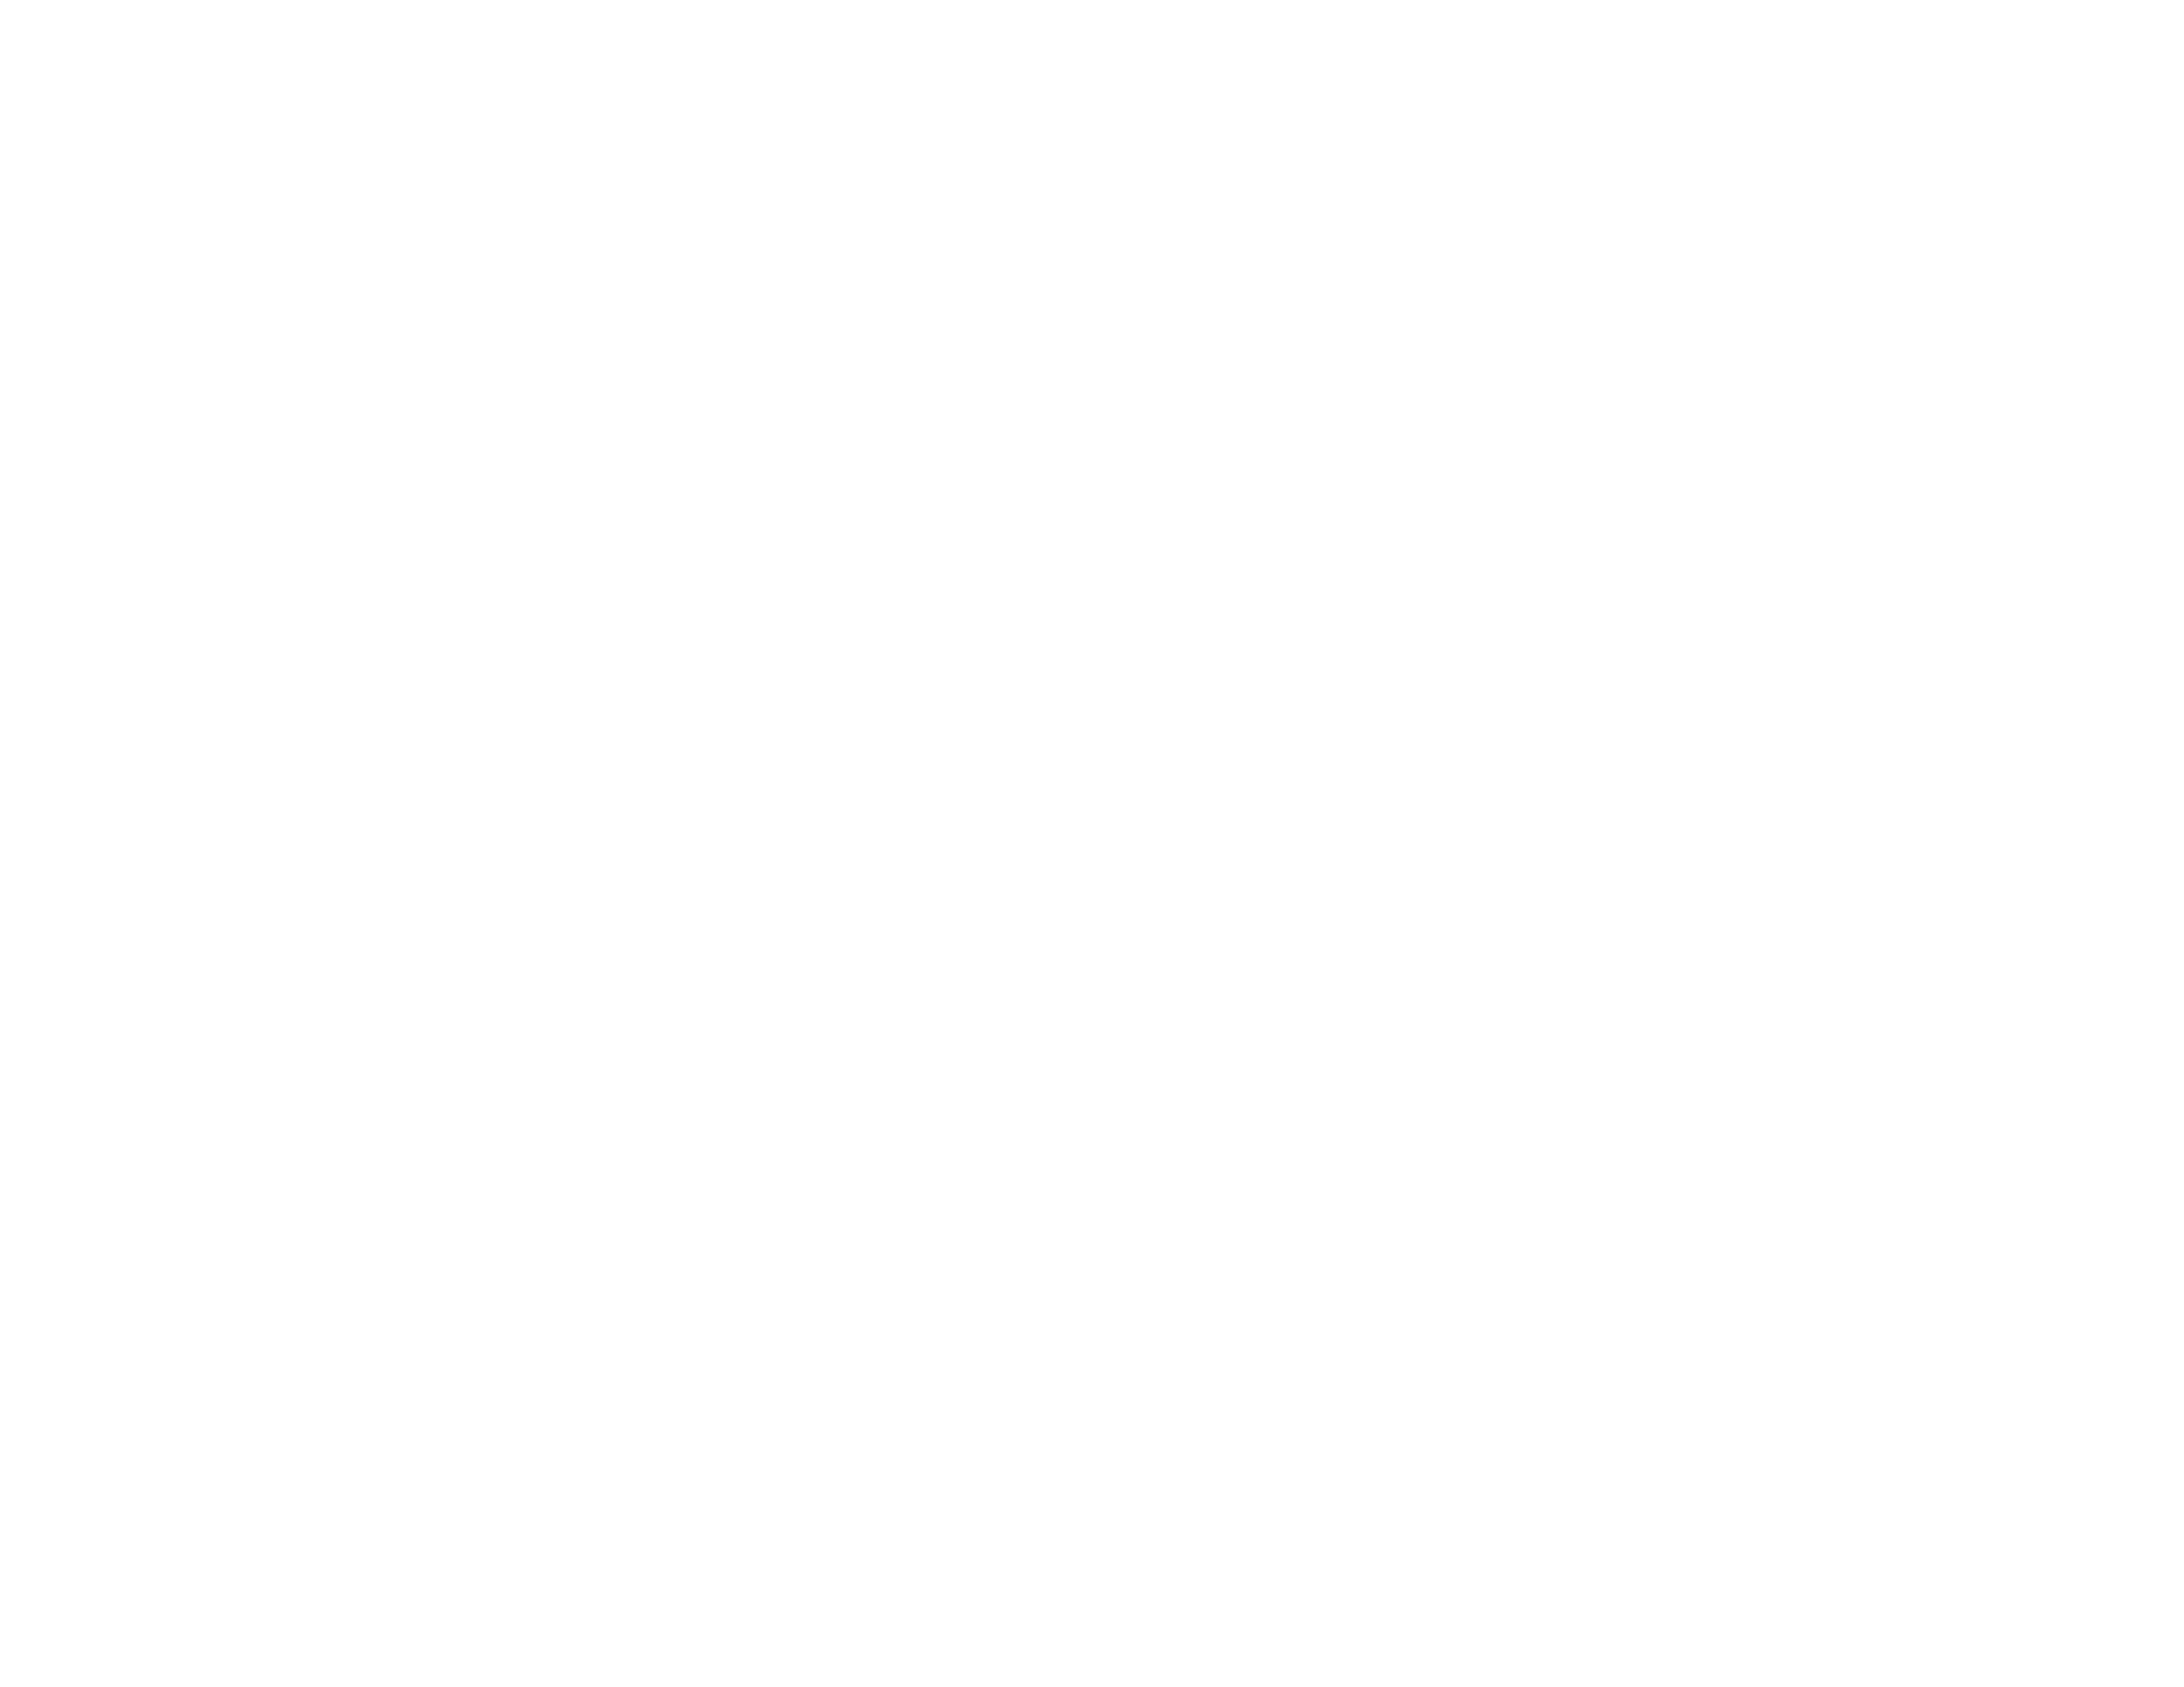 Mohler Recovery